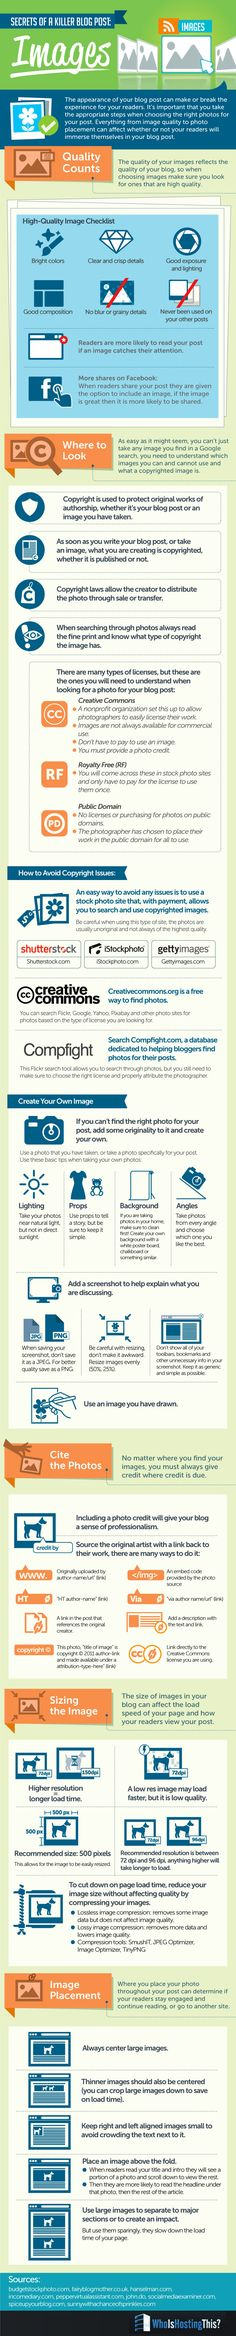 How to Avoid Copyright Trouble When Using Online Images (Infographic)